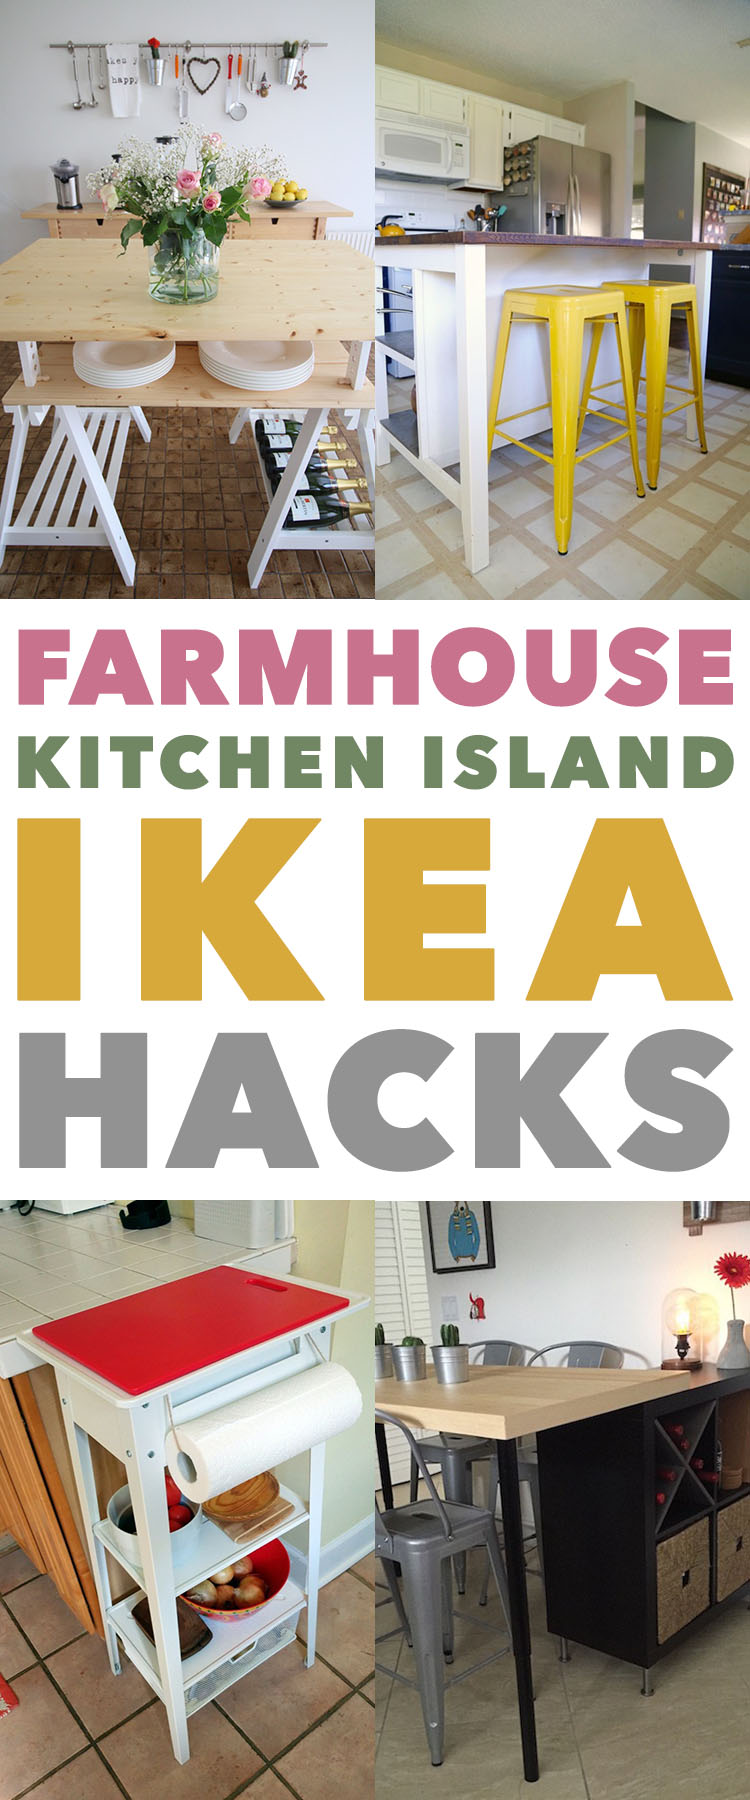 Farmhouse Kitchen Island IKEA Hacks | The Cottage Market